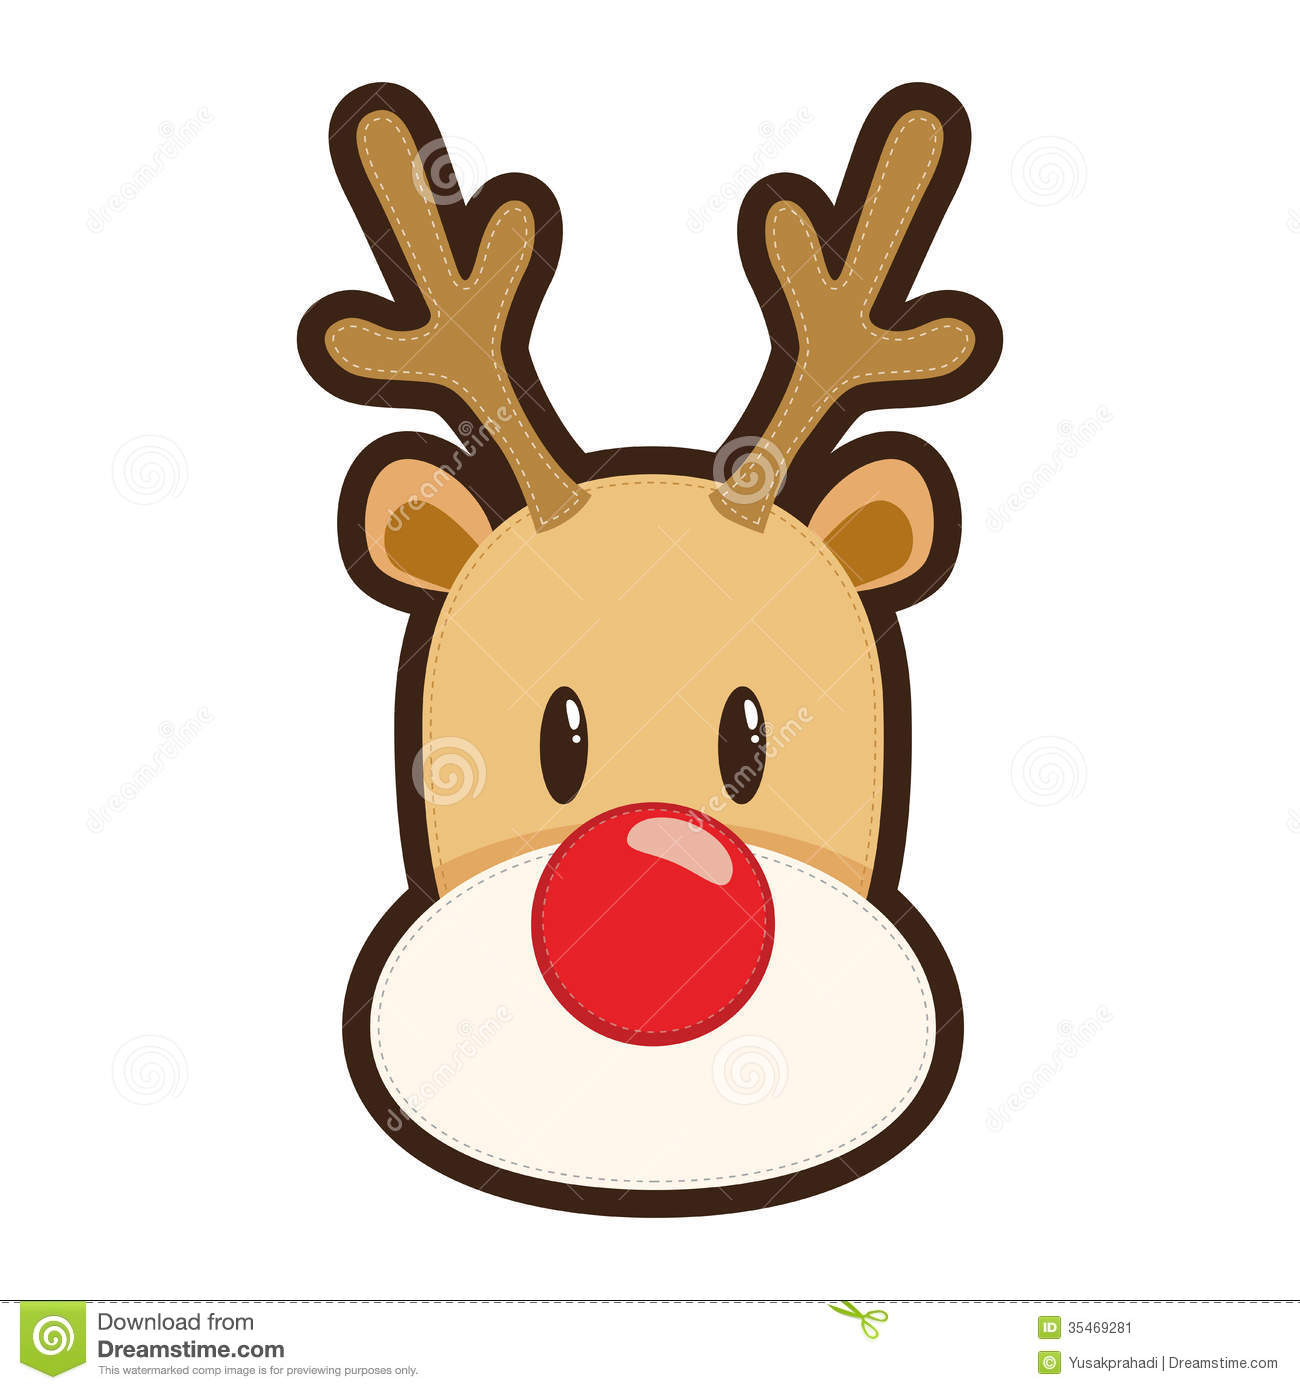 Cartoon Illustration Of Rudolph The Red -Cartoon Illustration Of Rudolph The Red Nosed Reindeer White-0